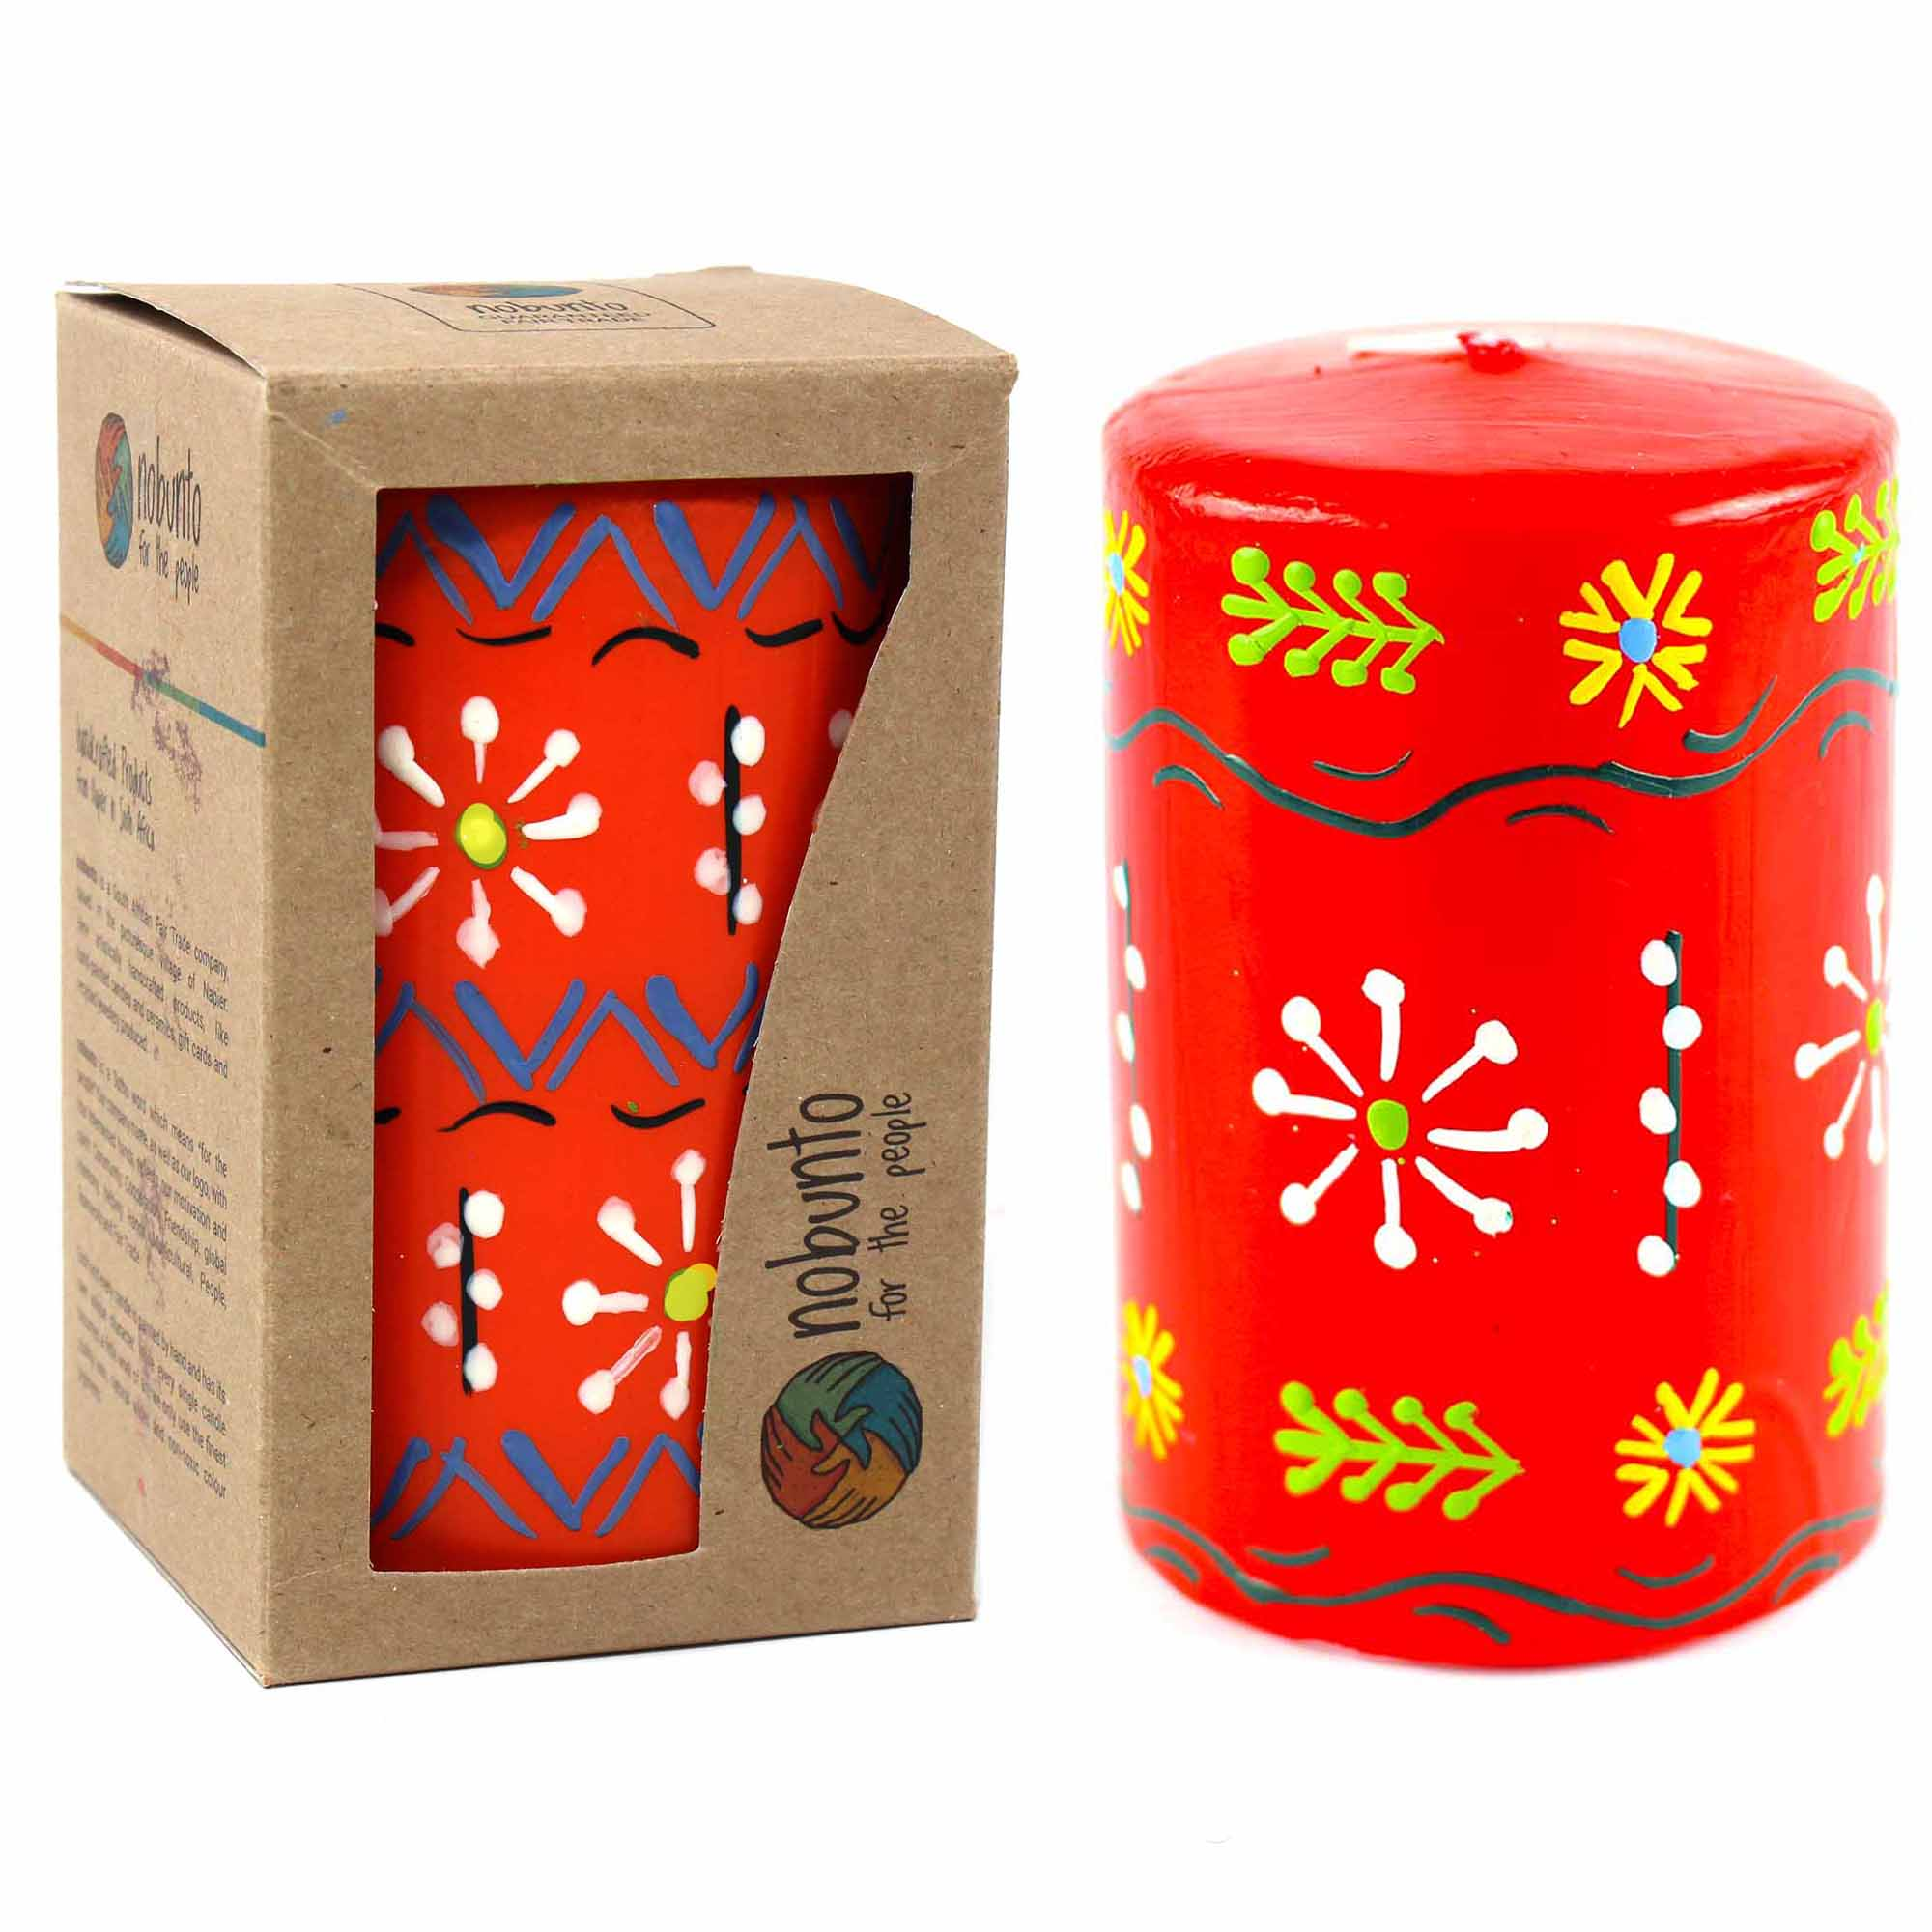 Hand-Painted Red Pillar Candle in Gift Box, 4-inch (Masika Design)